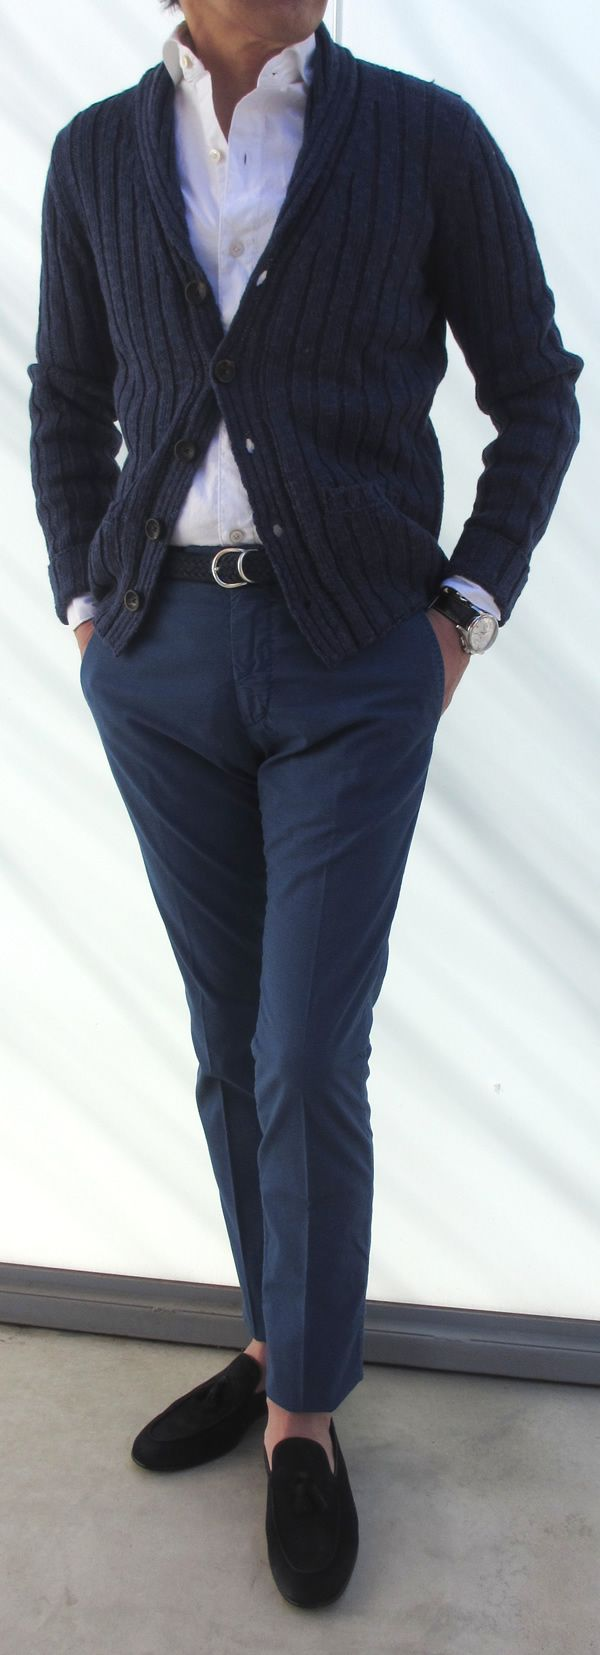 Navy shawl collar cardigan, white shirt, navy pants, black velvet slippers